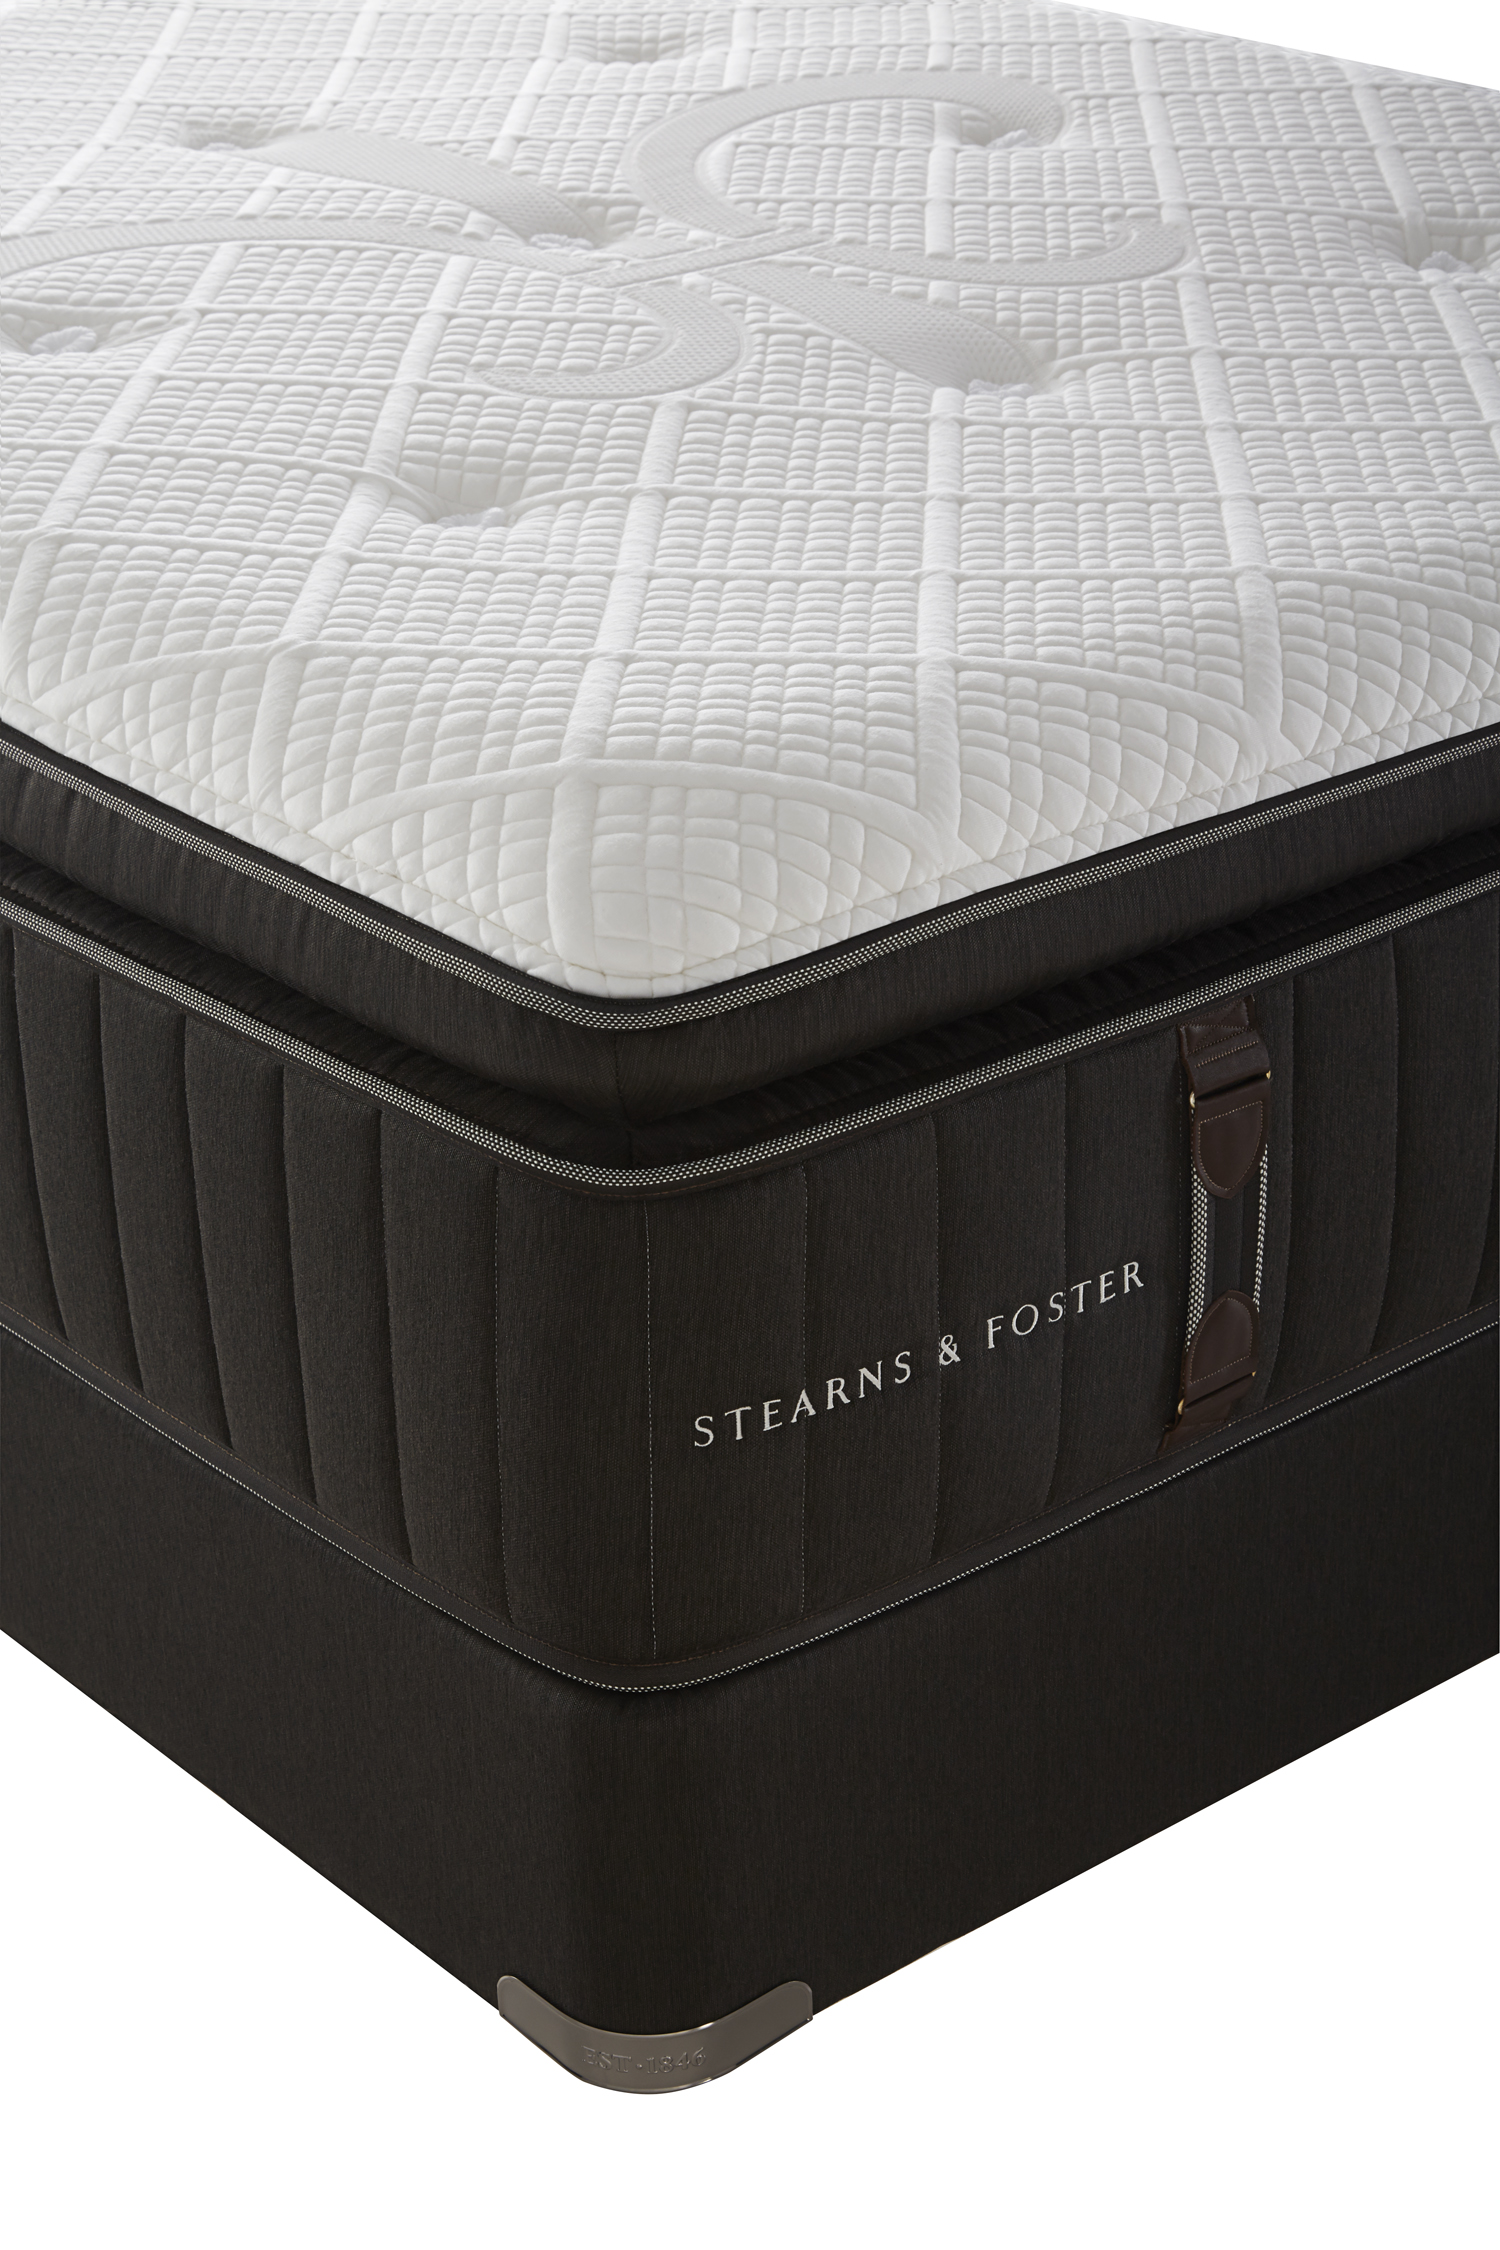 Stearns Full And Size Wanda Dimensions Mattress Foster